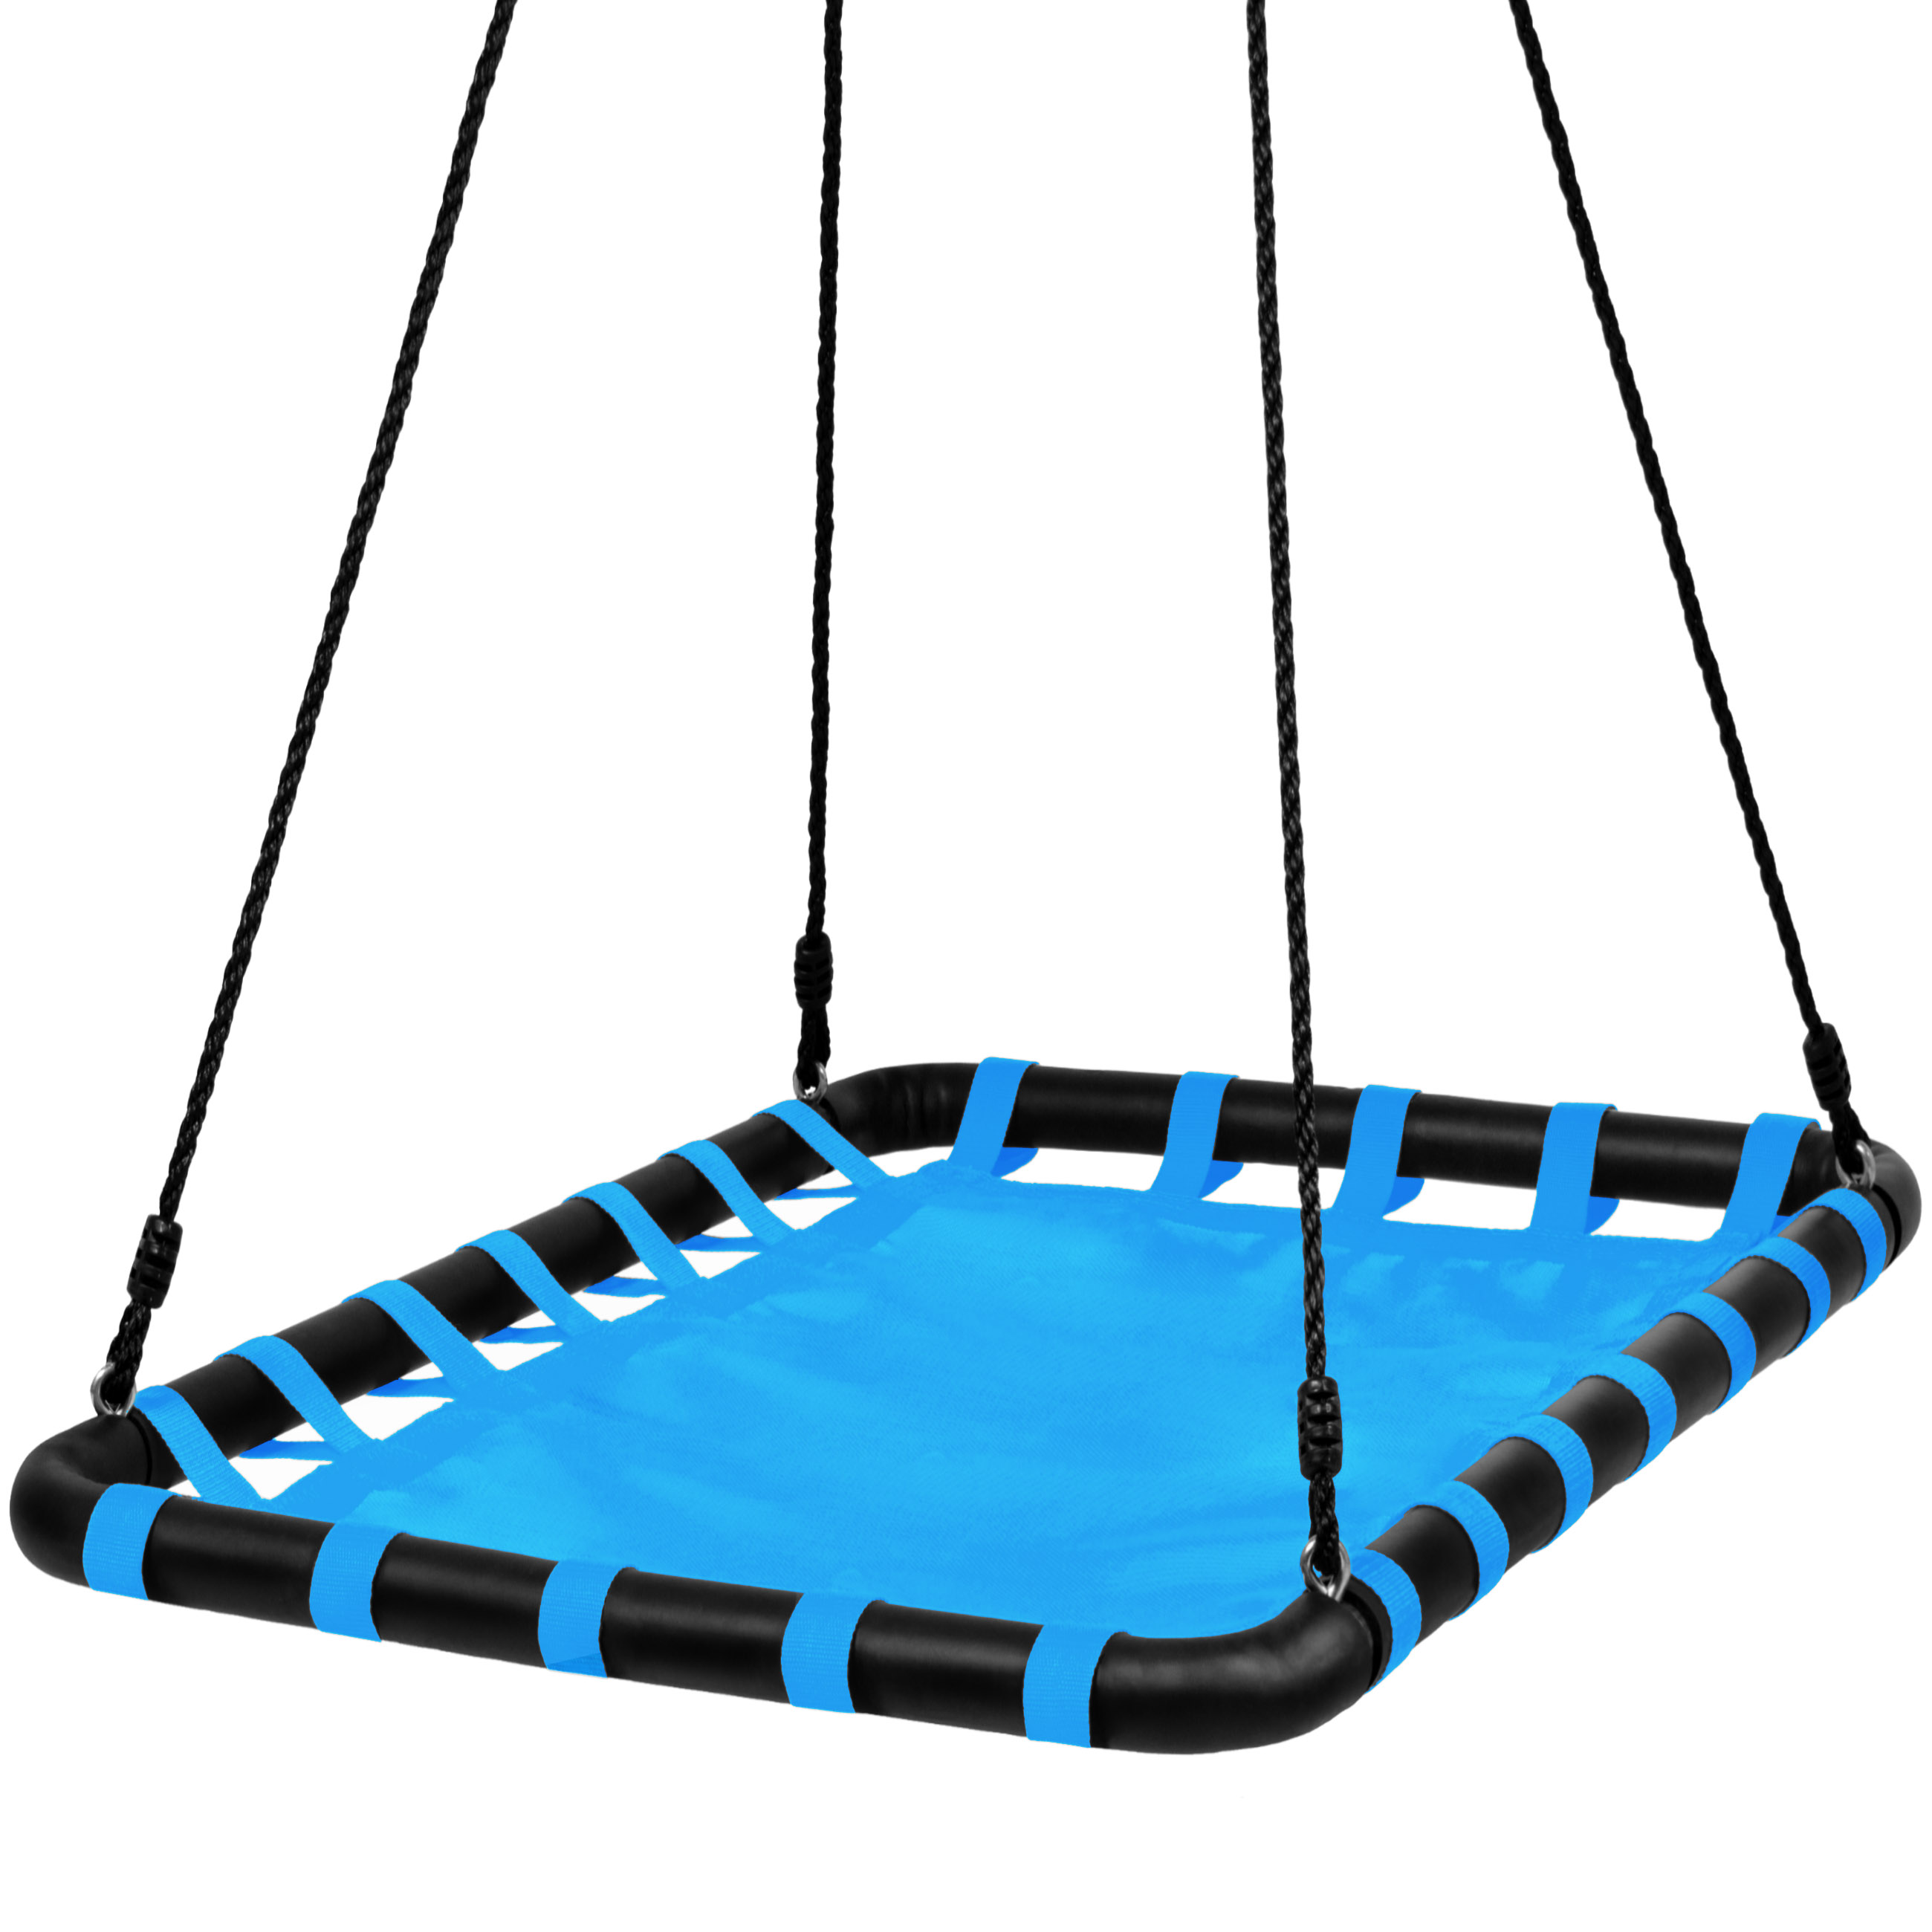 "Best Choice Products 40"" x 30"" Giant Heavy-Duty Mat Platform Swing For Multiple Kids, Tree Swing - Blue"